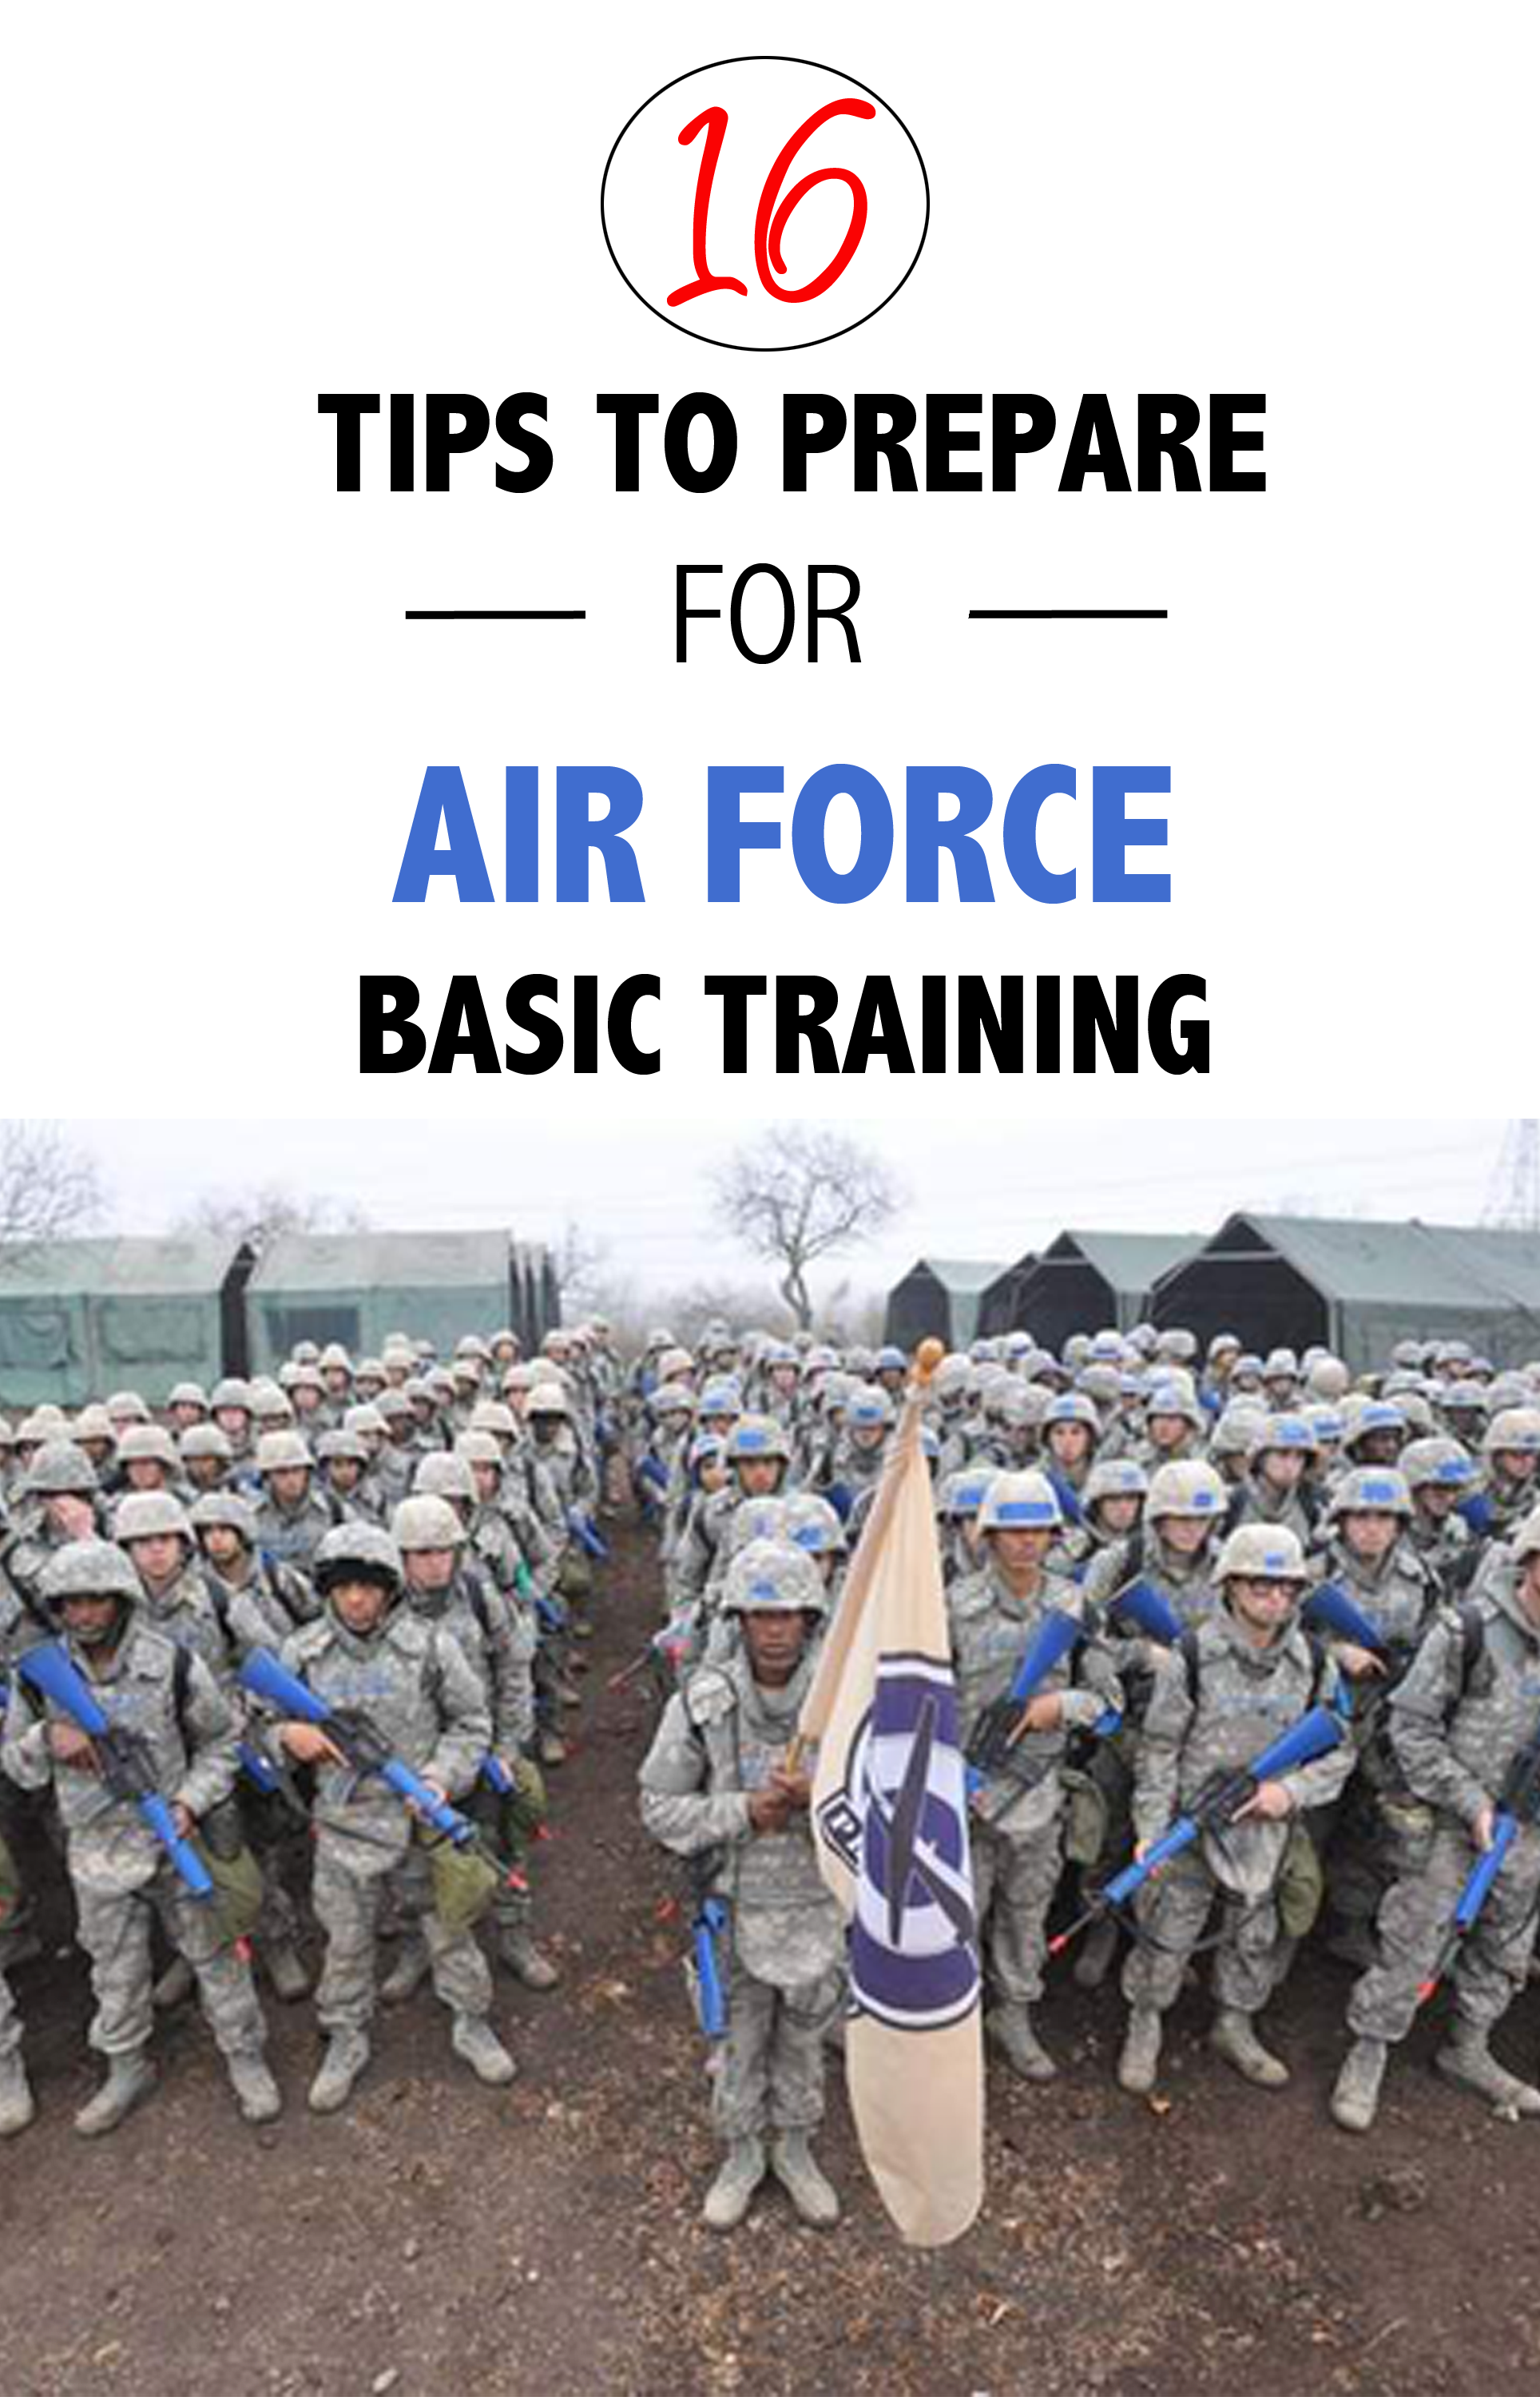 Get prepared for Air Force Basic Military Training with these 16